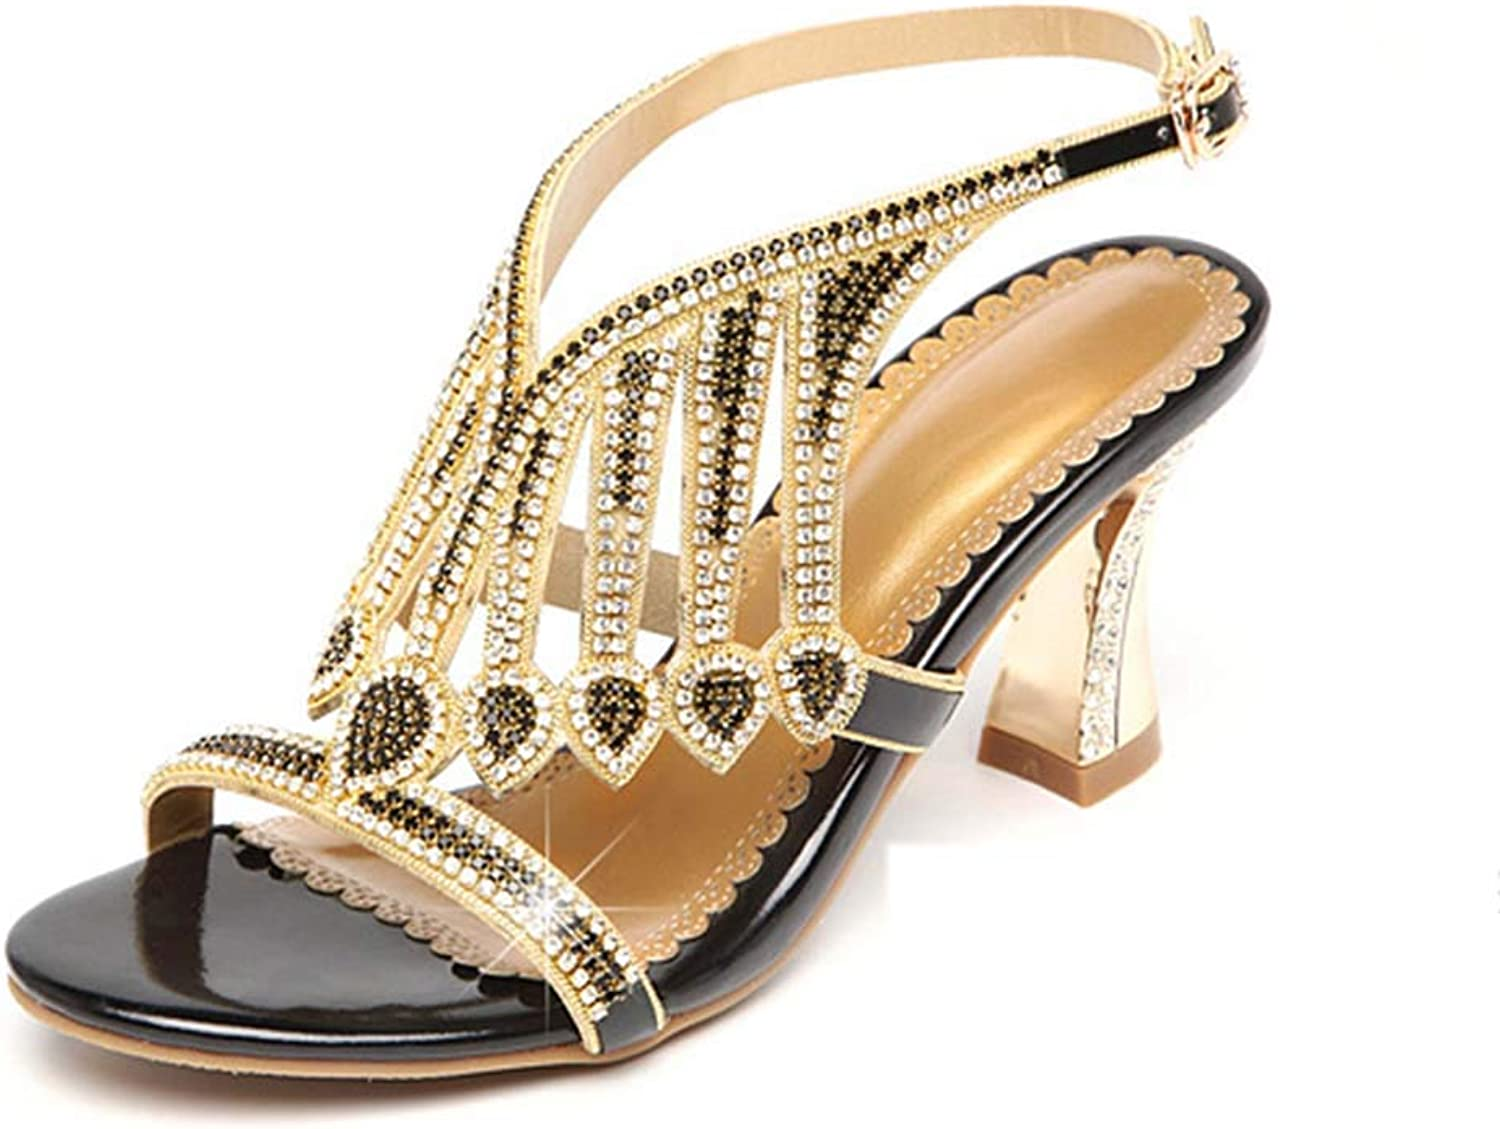 Women's Sandals Rhinestones with Diamond-Encrusted Leather Sandals high Heels Open Toe Thick Heel Sandals Summer New